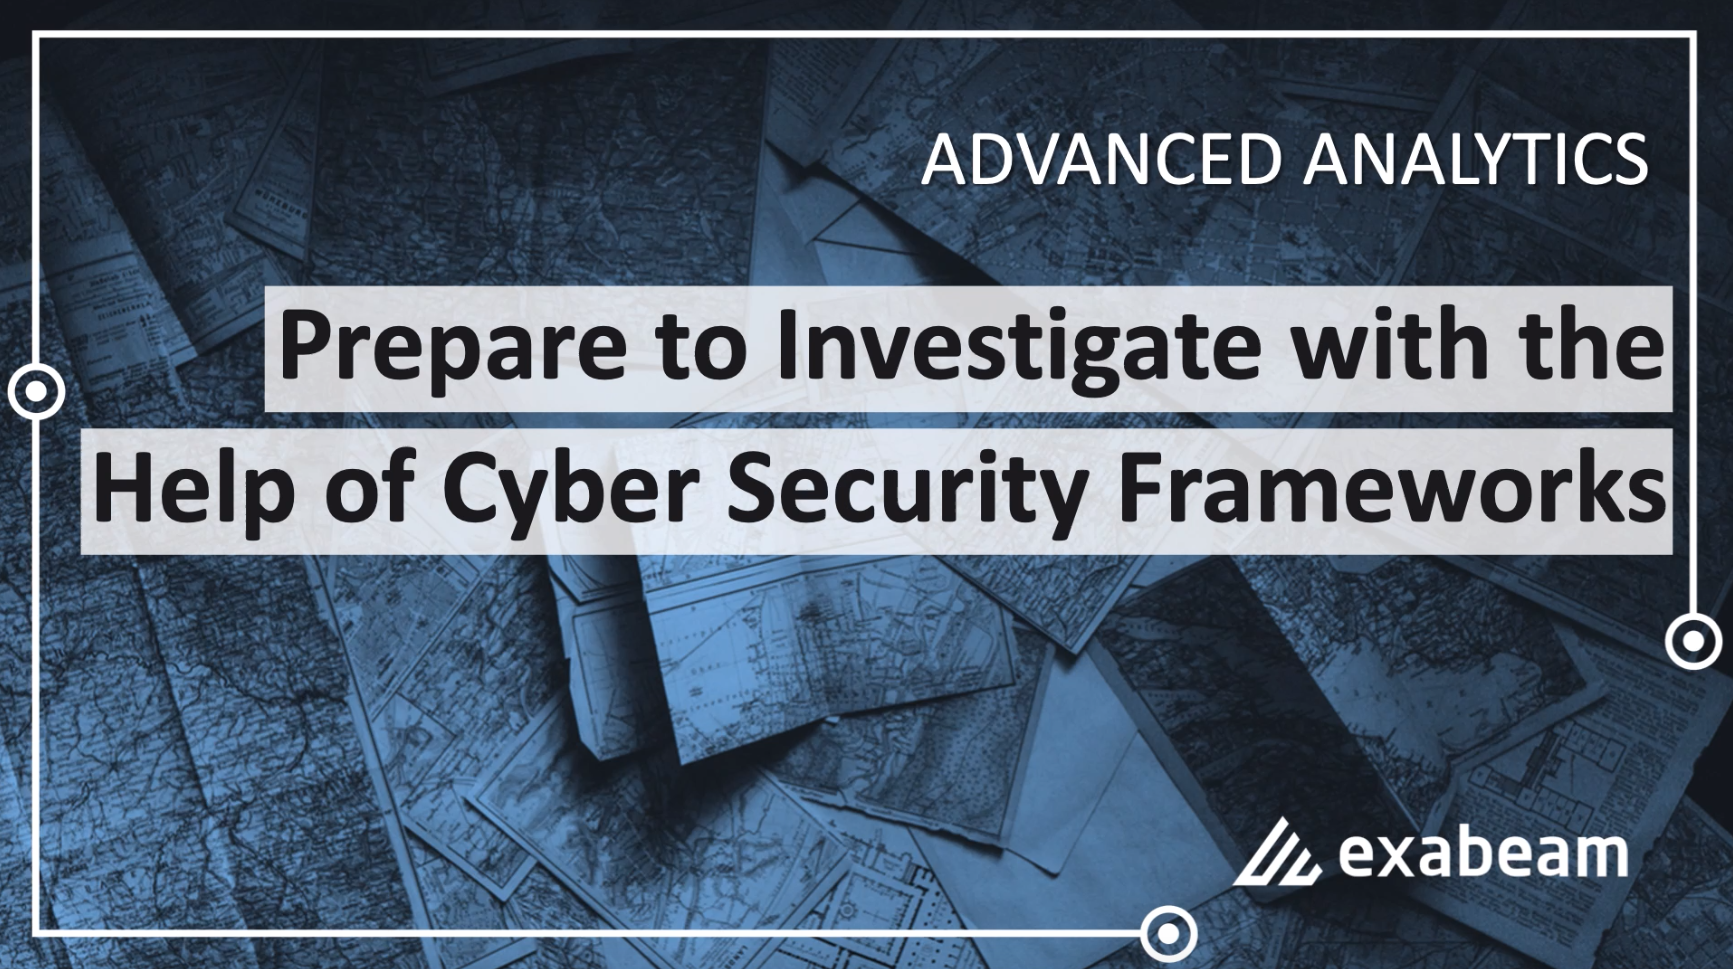 Episode 2: Prepare to Investigate with the Help of Cyber Security Frameworks